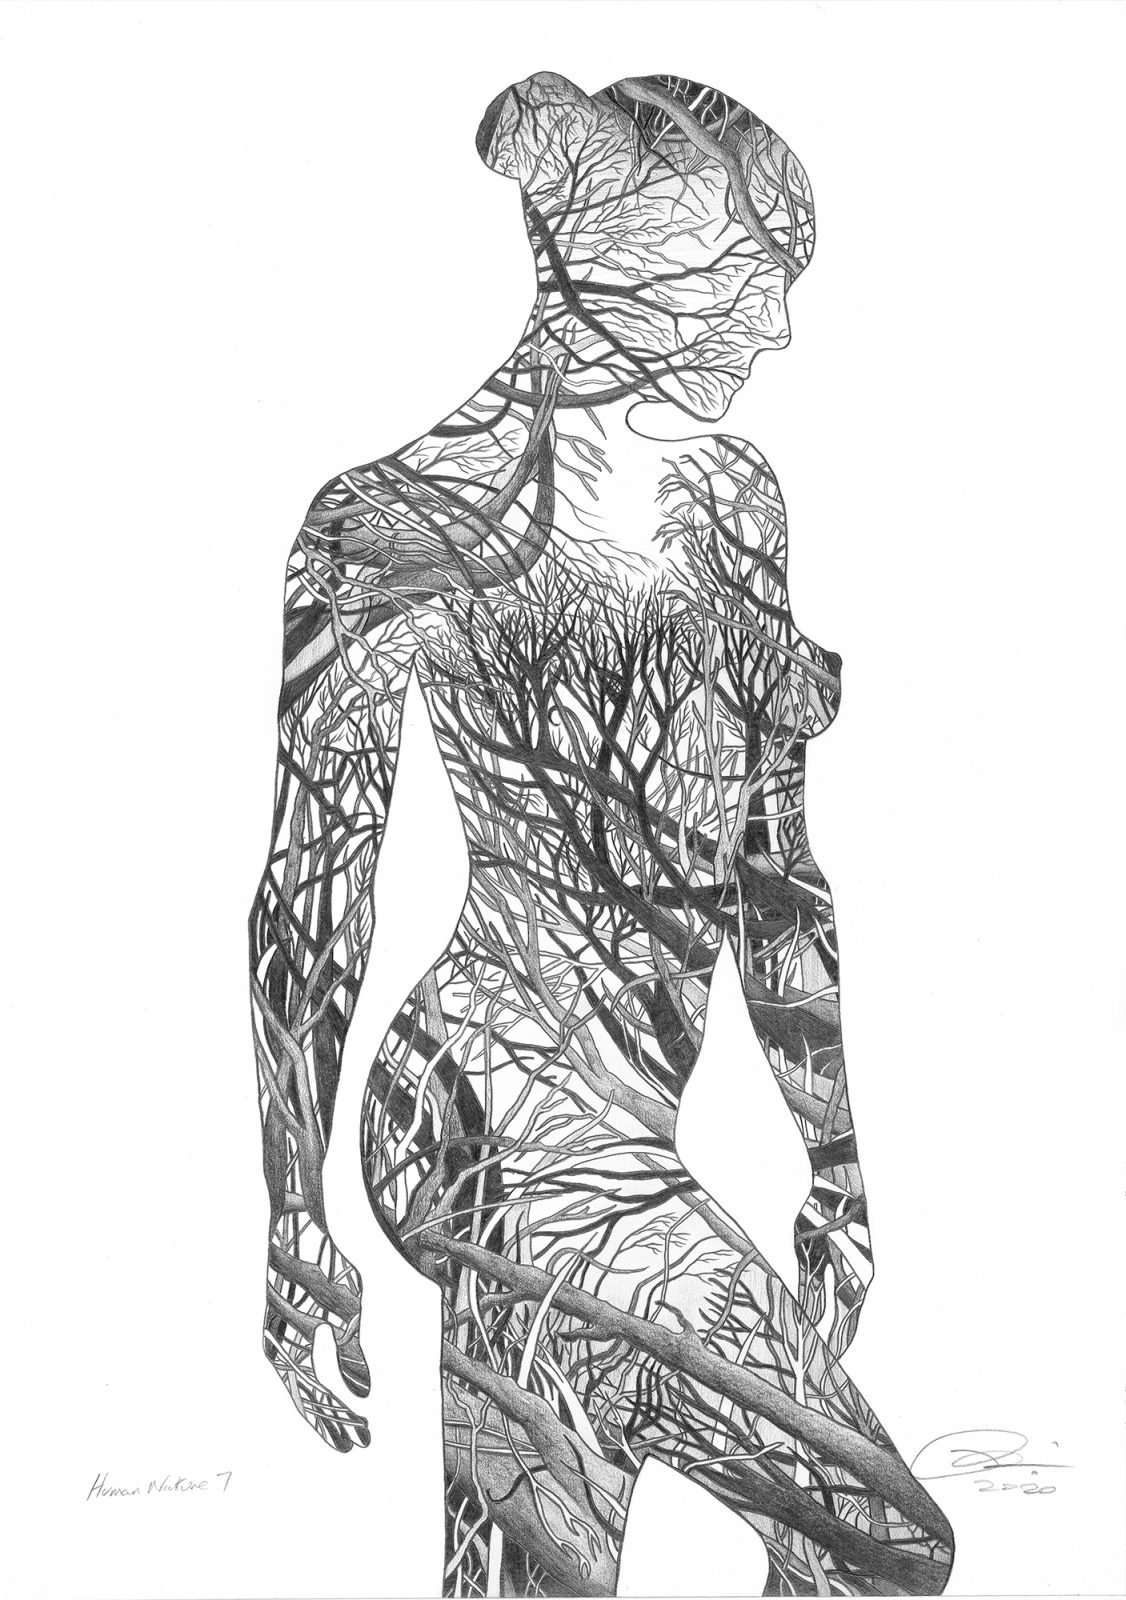 Human Nature 7 - drawing by Paul Kingsley Squire